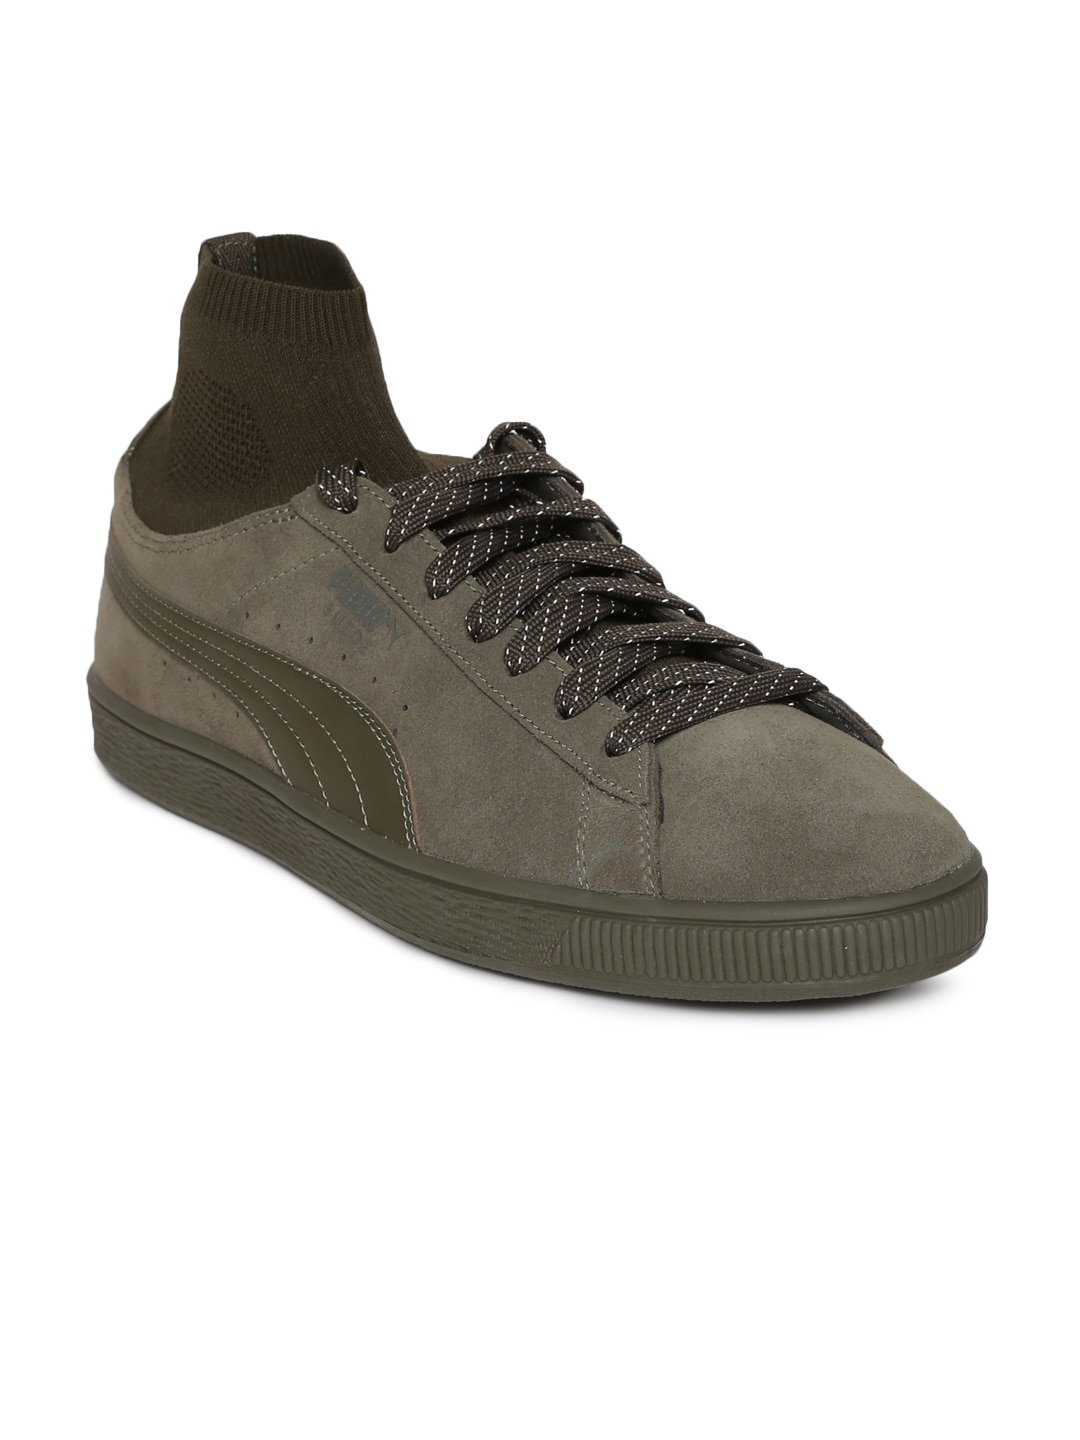 Puma R698 Allover Suede Olive Sneakers for Men online in India at ... 0ebc938bd